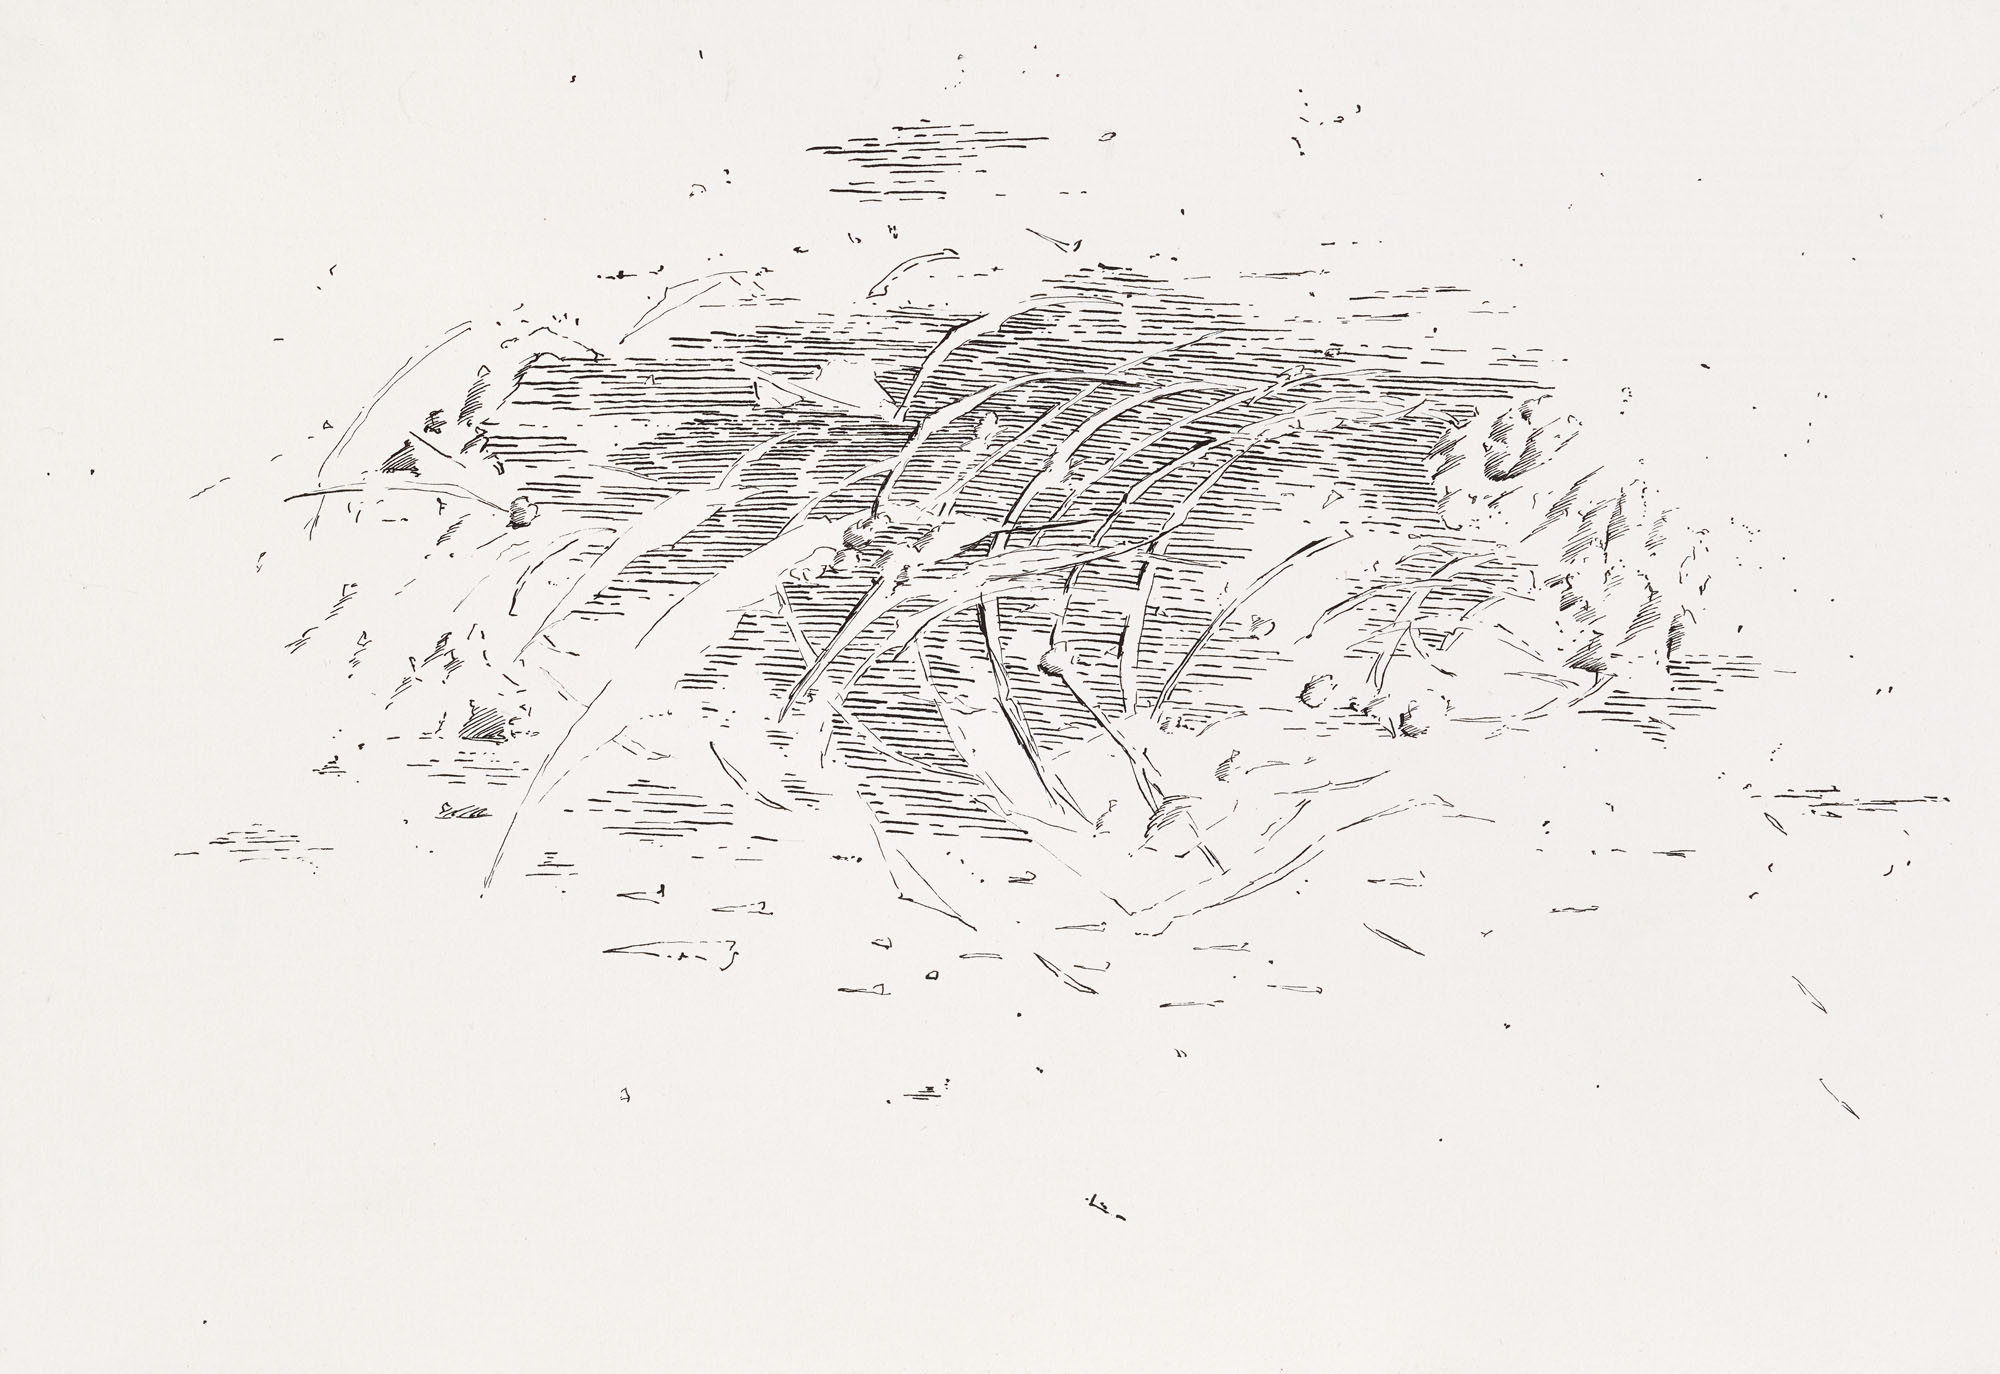 B_K_P_16514_untitled_ink_on_paper_21x29cm_2012